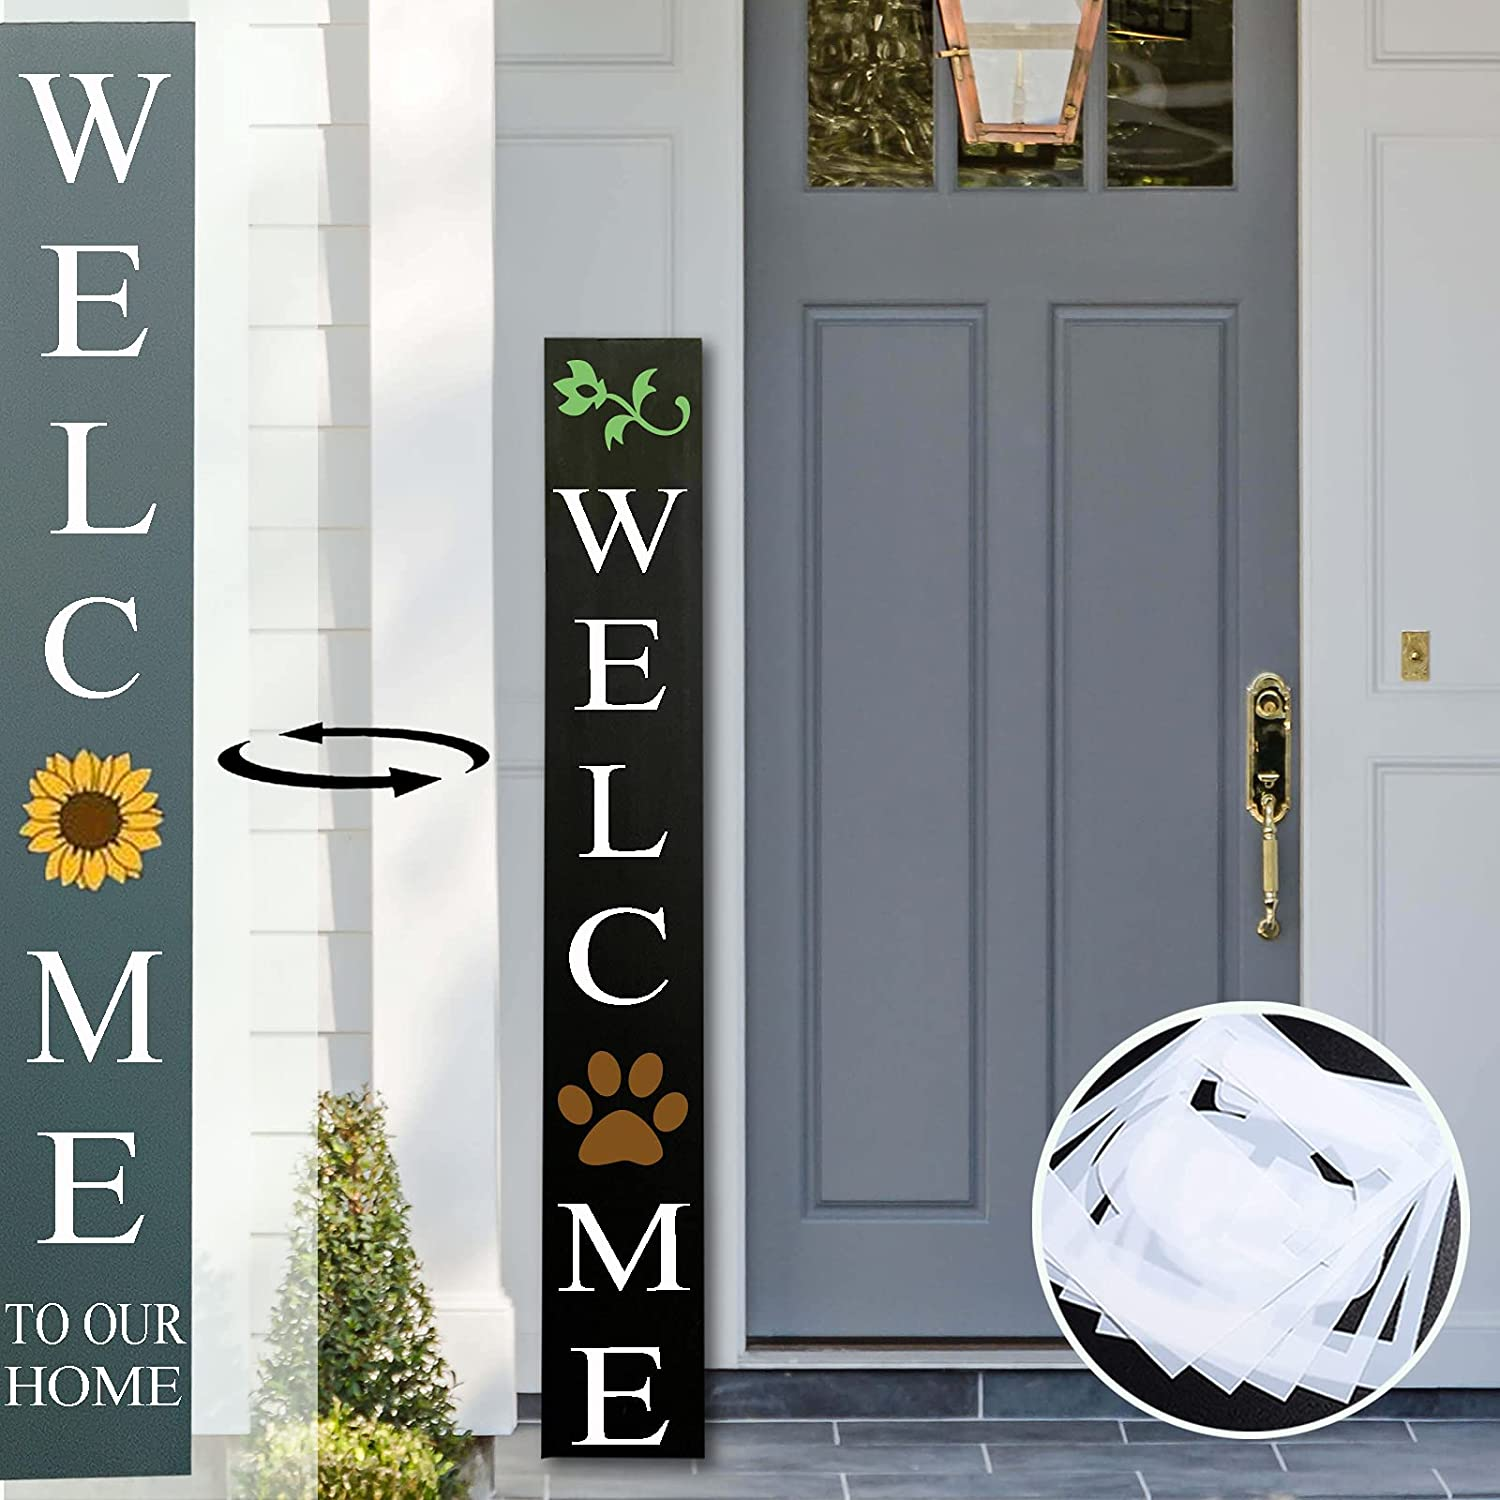 Tall Outdoor Welcome Sign for Front Porch , 2 Sided 4 Feet Tall, Blank Wooden Vertical Welcome Sign Front Door Decor, Rustic DIY Welcome Home Sign, Farmhouse Decorative Outdoor Signs